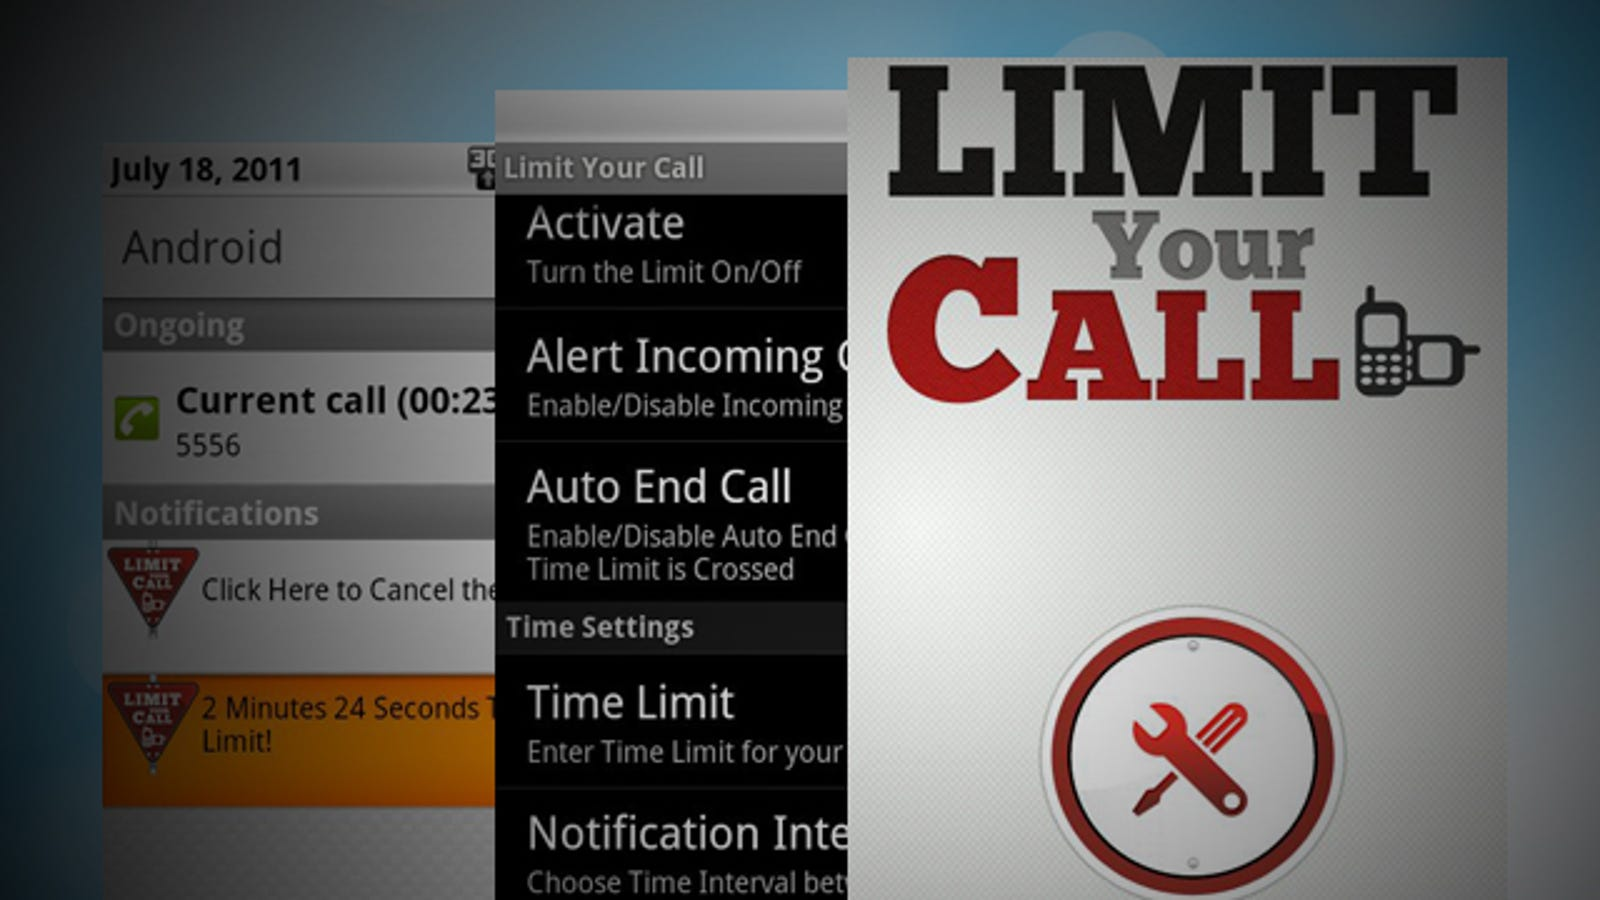 Limit Your Call for Android Automatically Ends Calls, Saves